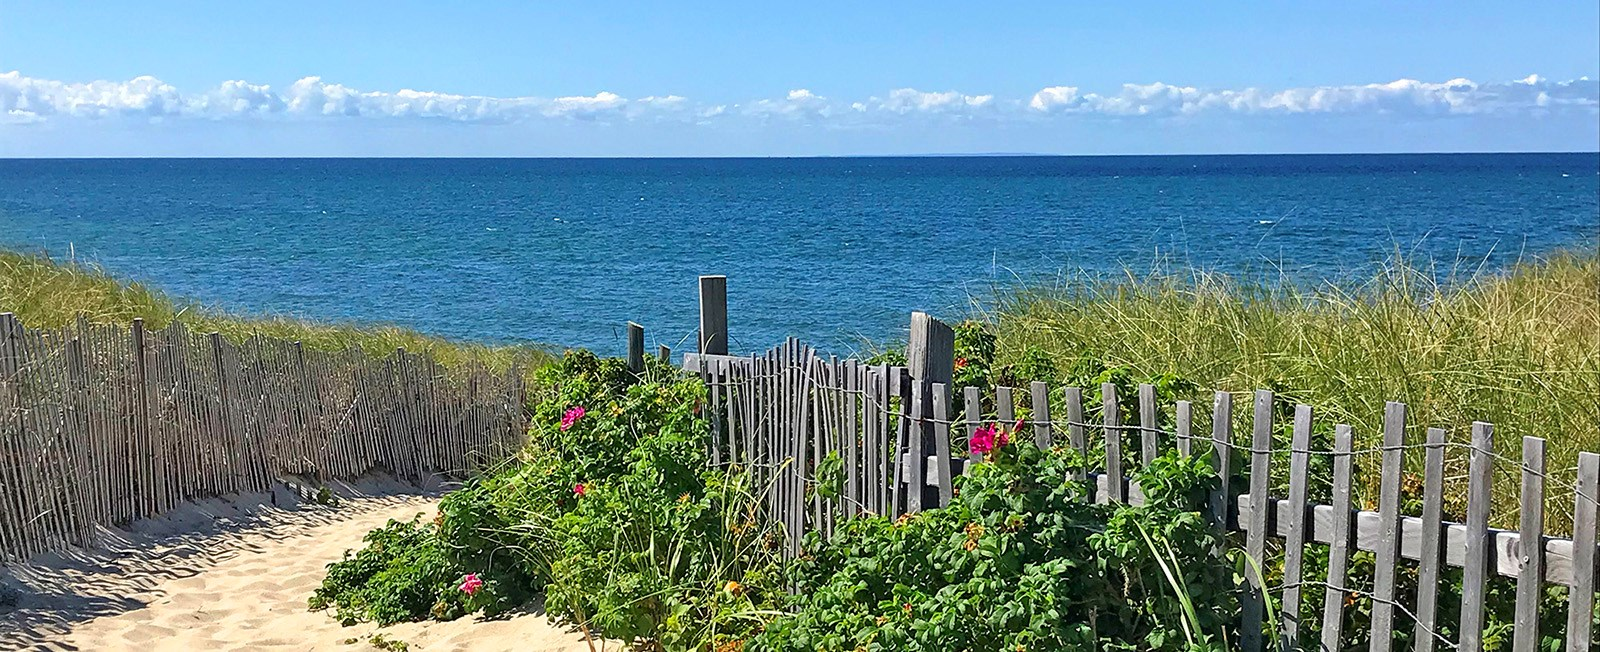 Visit the Outer Cape town of Truro to find some of the prettiest beaches on Cape Cod.